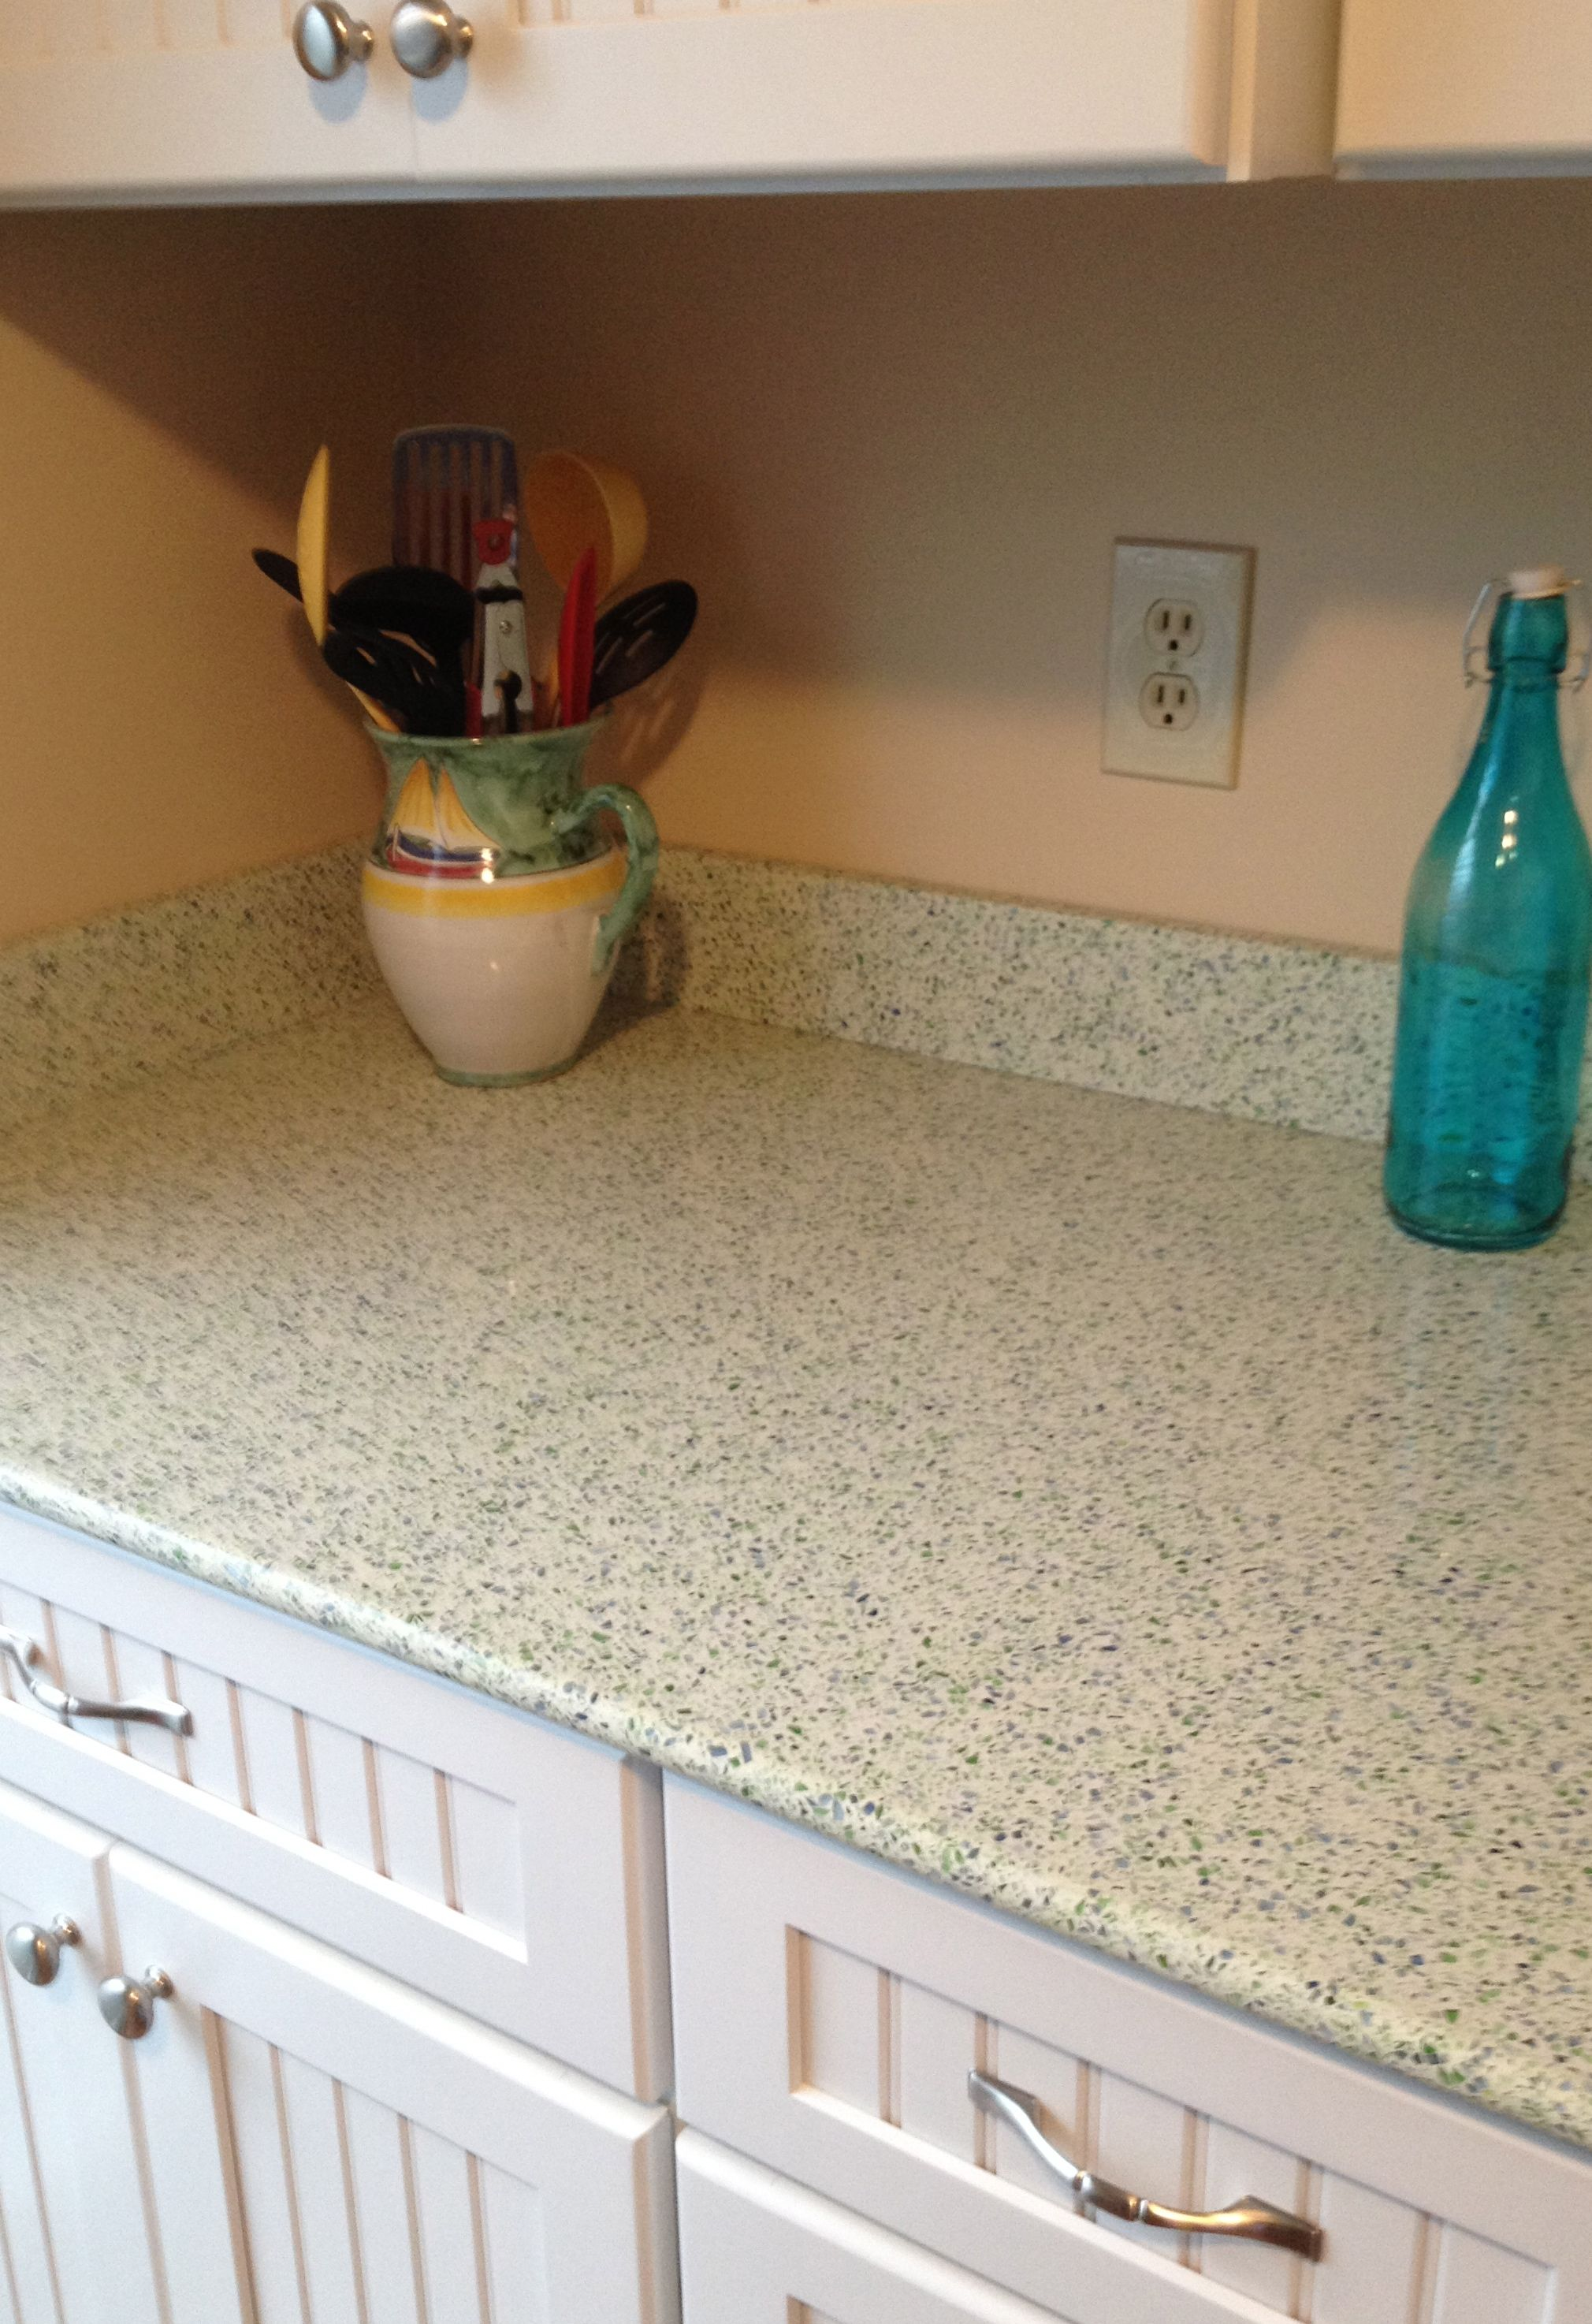 Recycled Glass Countertops Pros And Cons - Here are my new recycled glass countertops